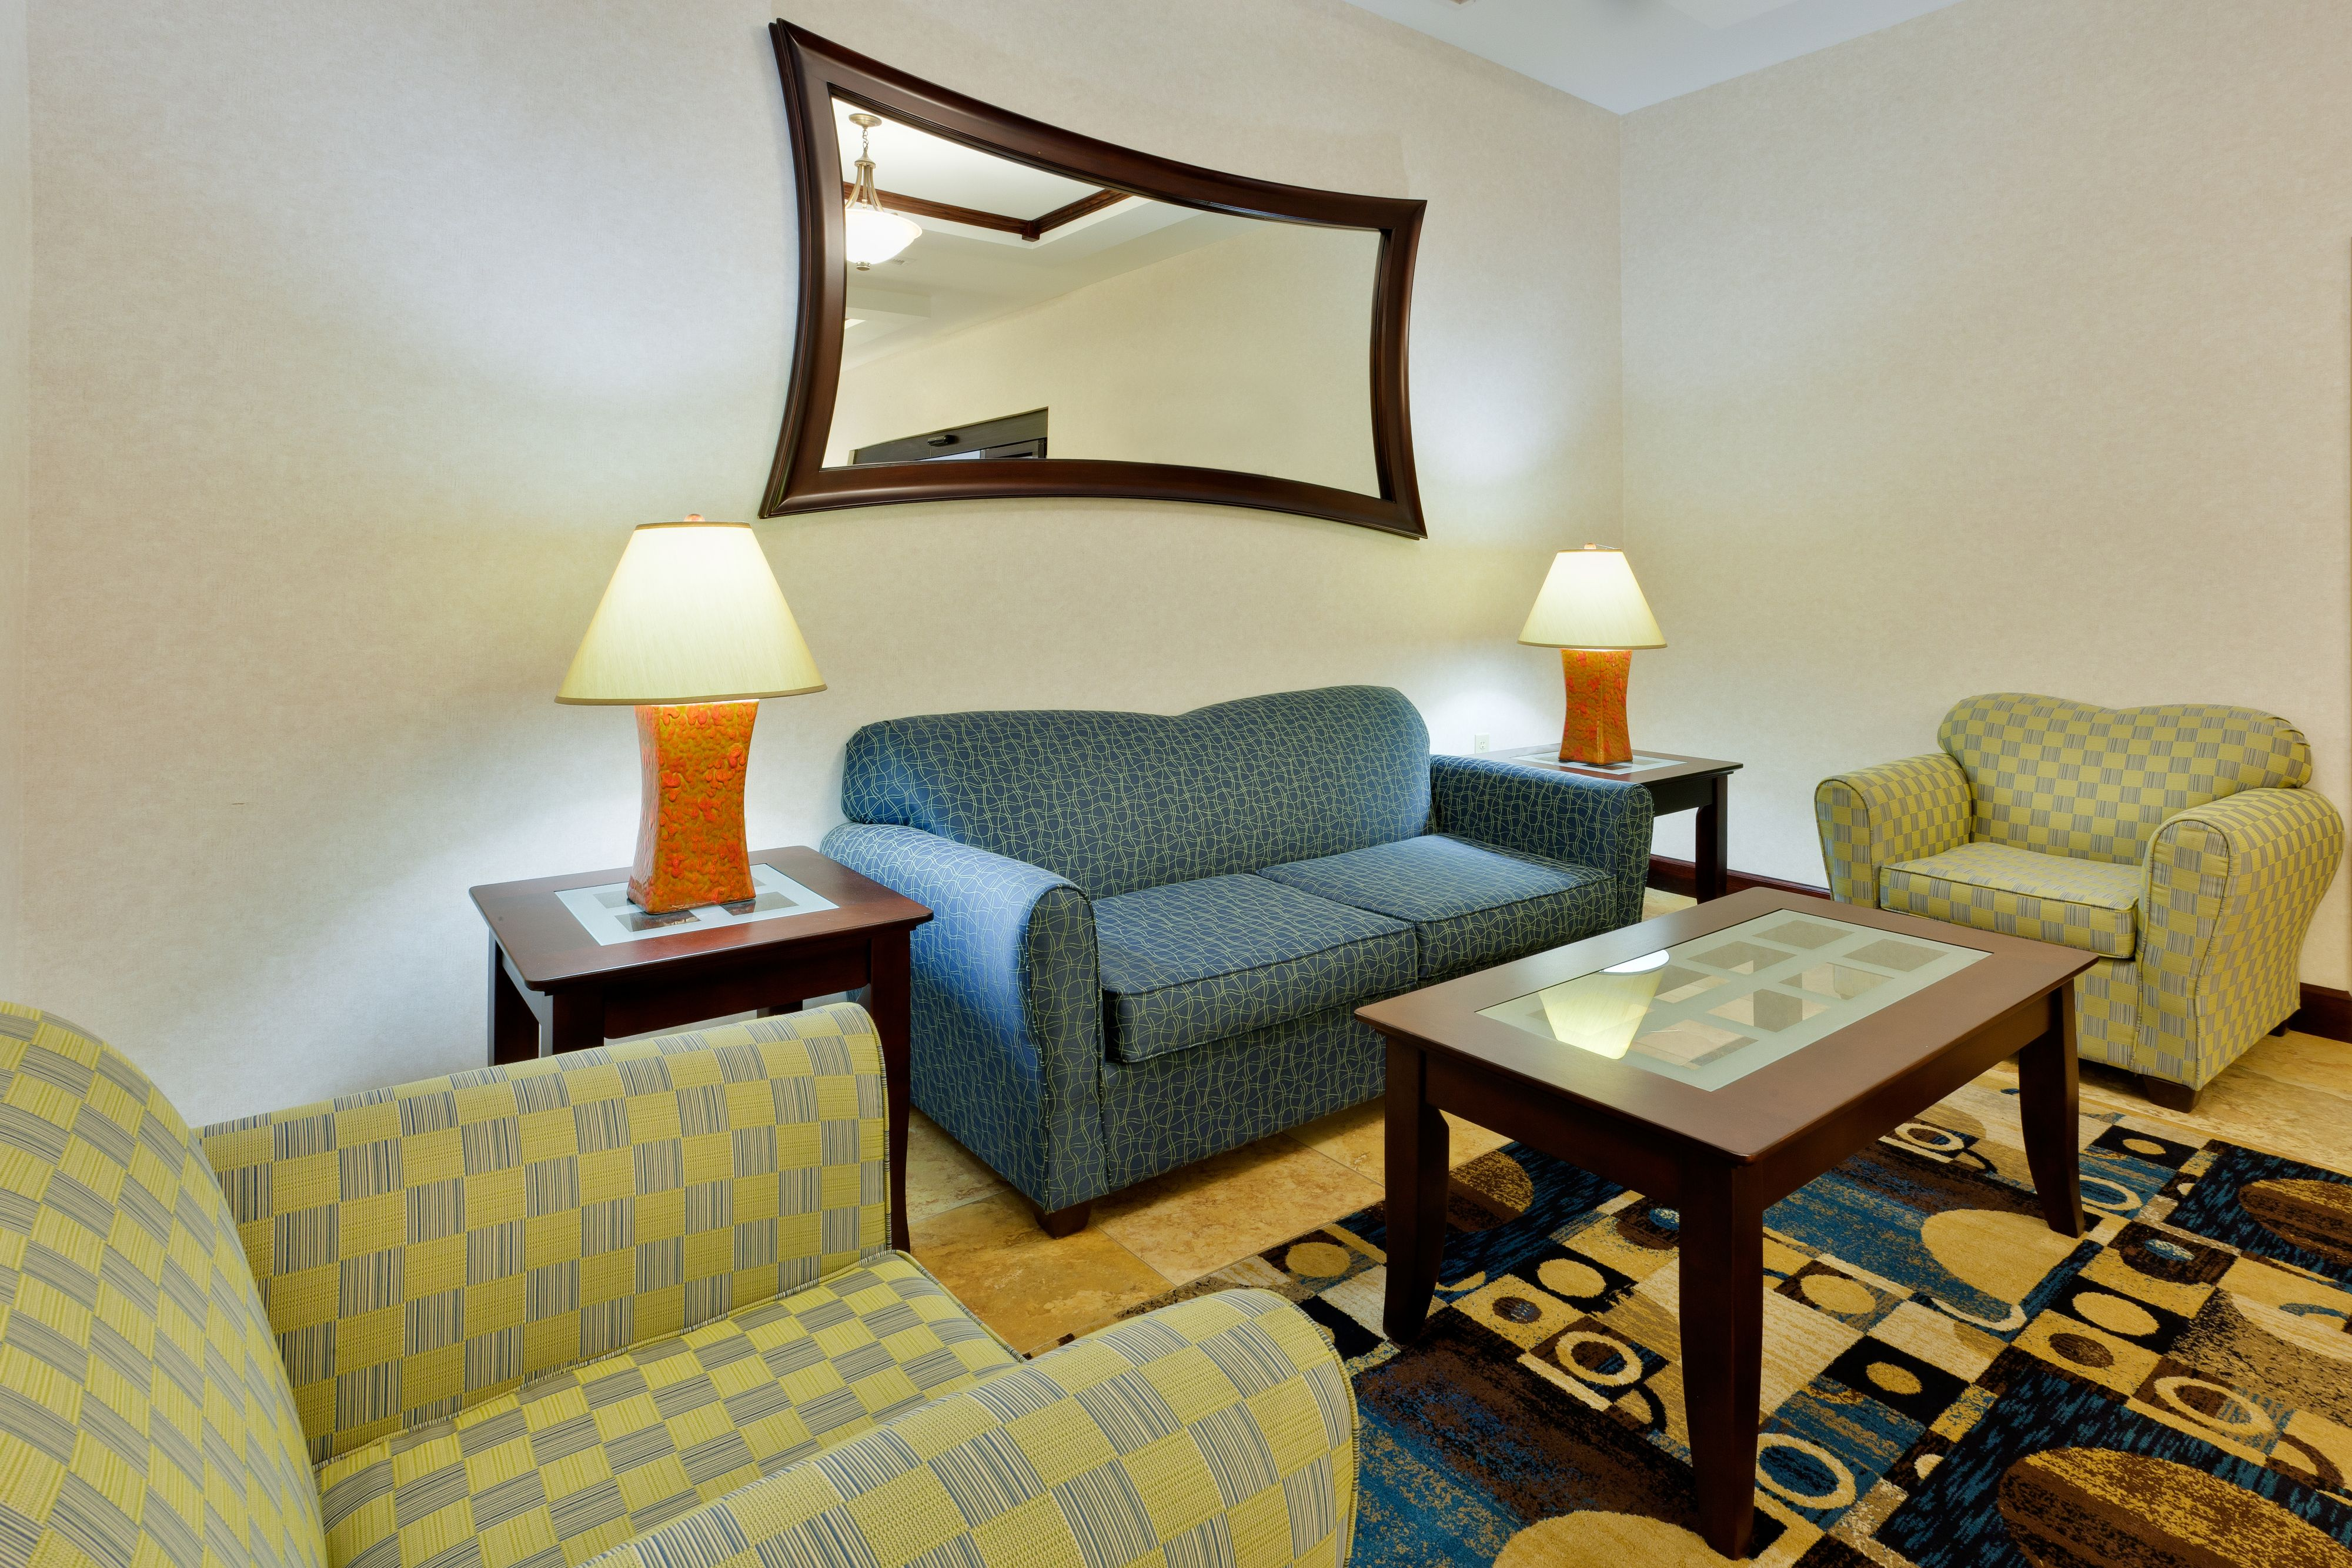 Holiday Inn Express & Suites White Haven - Poconos image 5